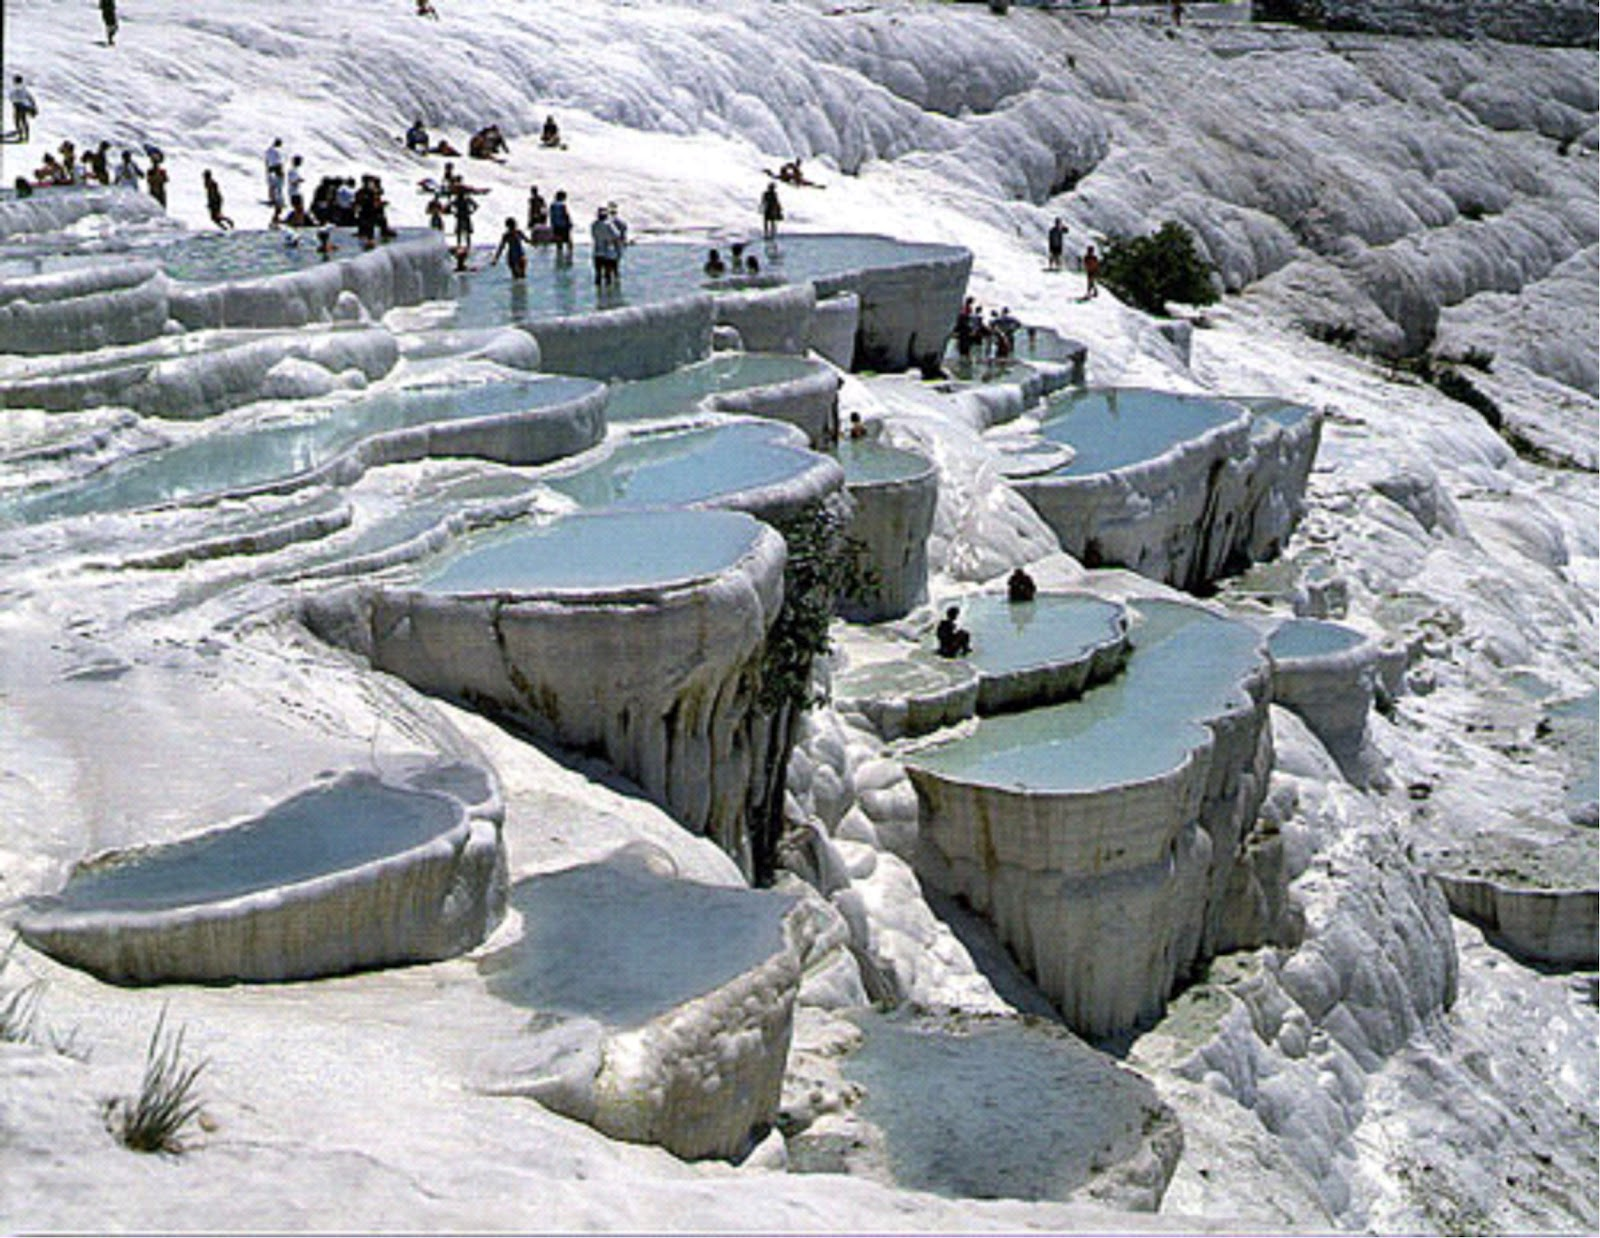 Touristsparadise pamukkale mineral terraces turkey for Terraces opening times